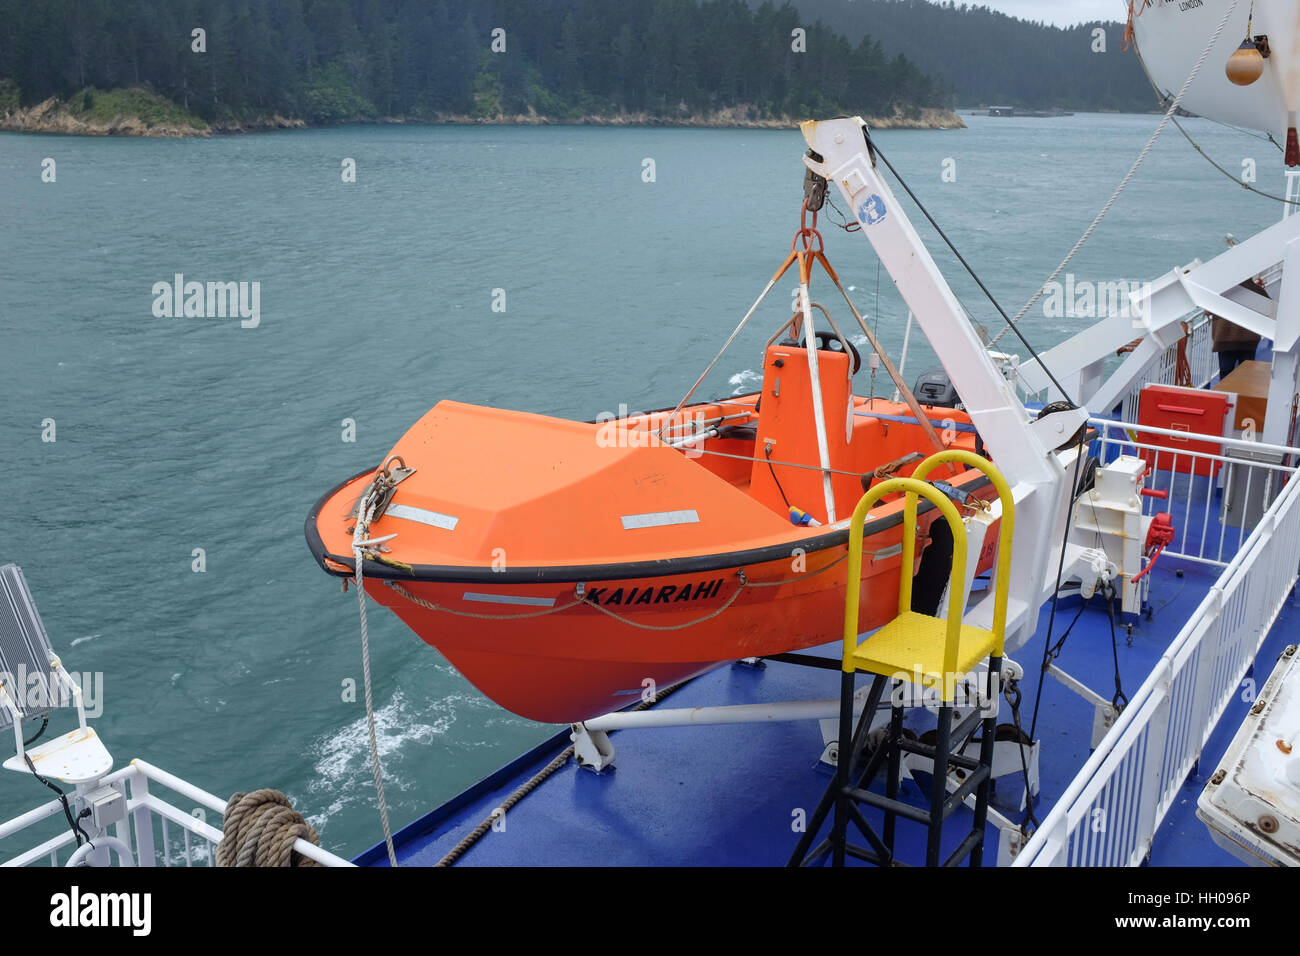 A lifeboat on the Kaiarahi Interislander ferry in New Zealand. - Stock Image